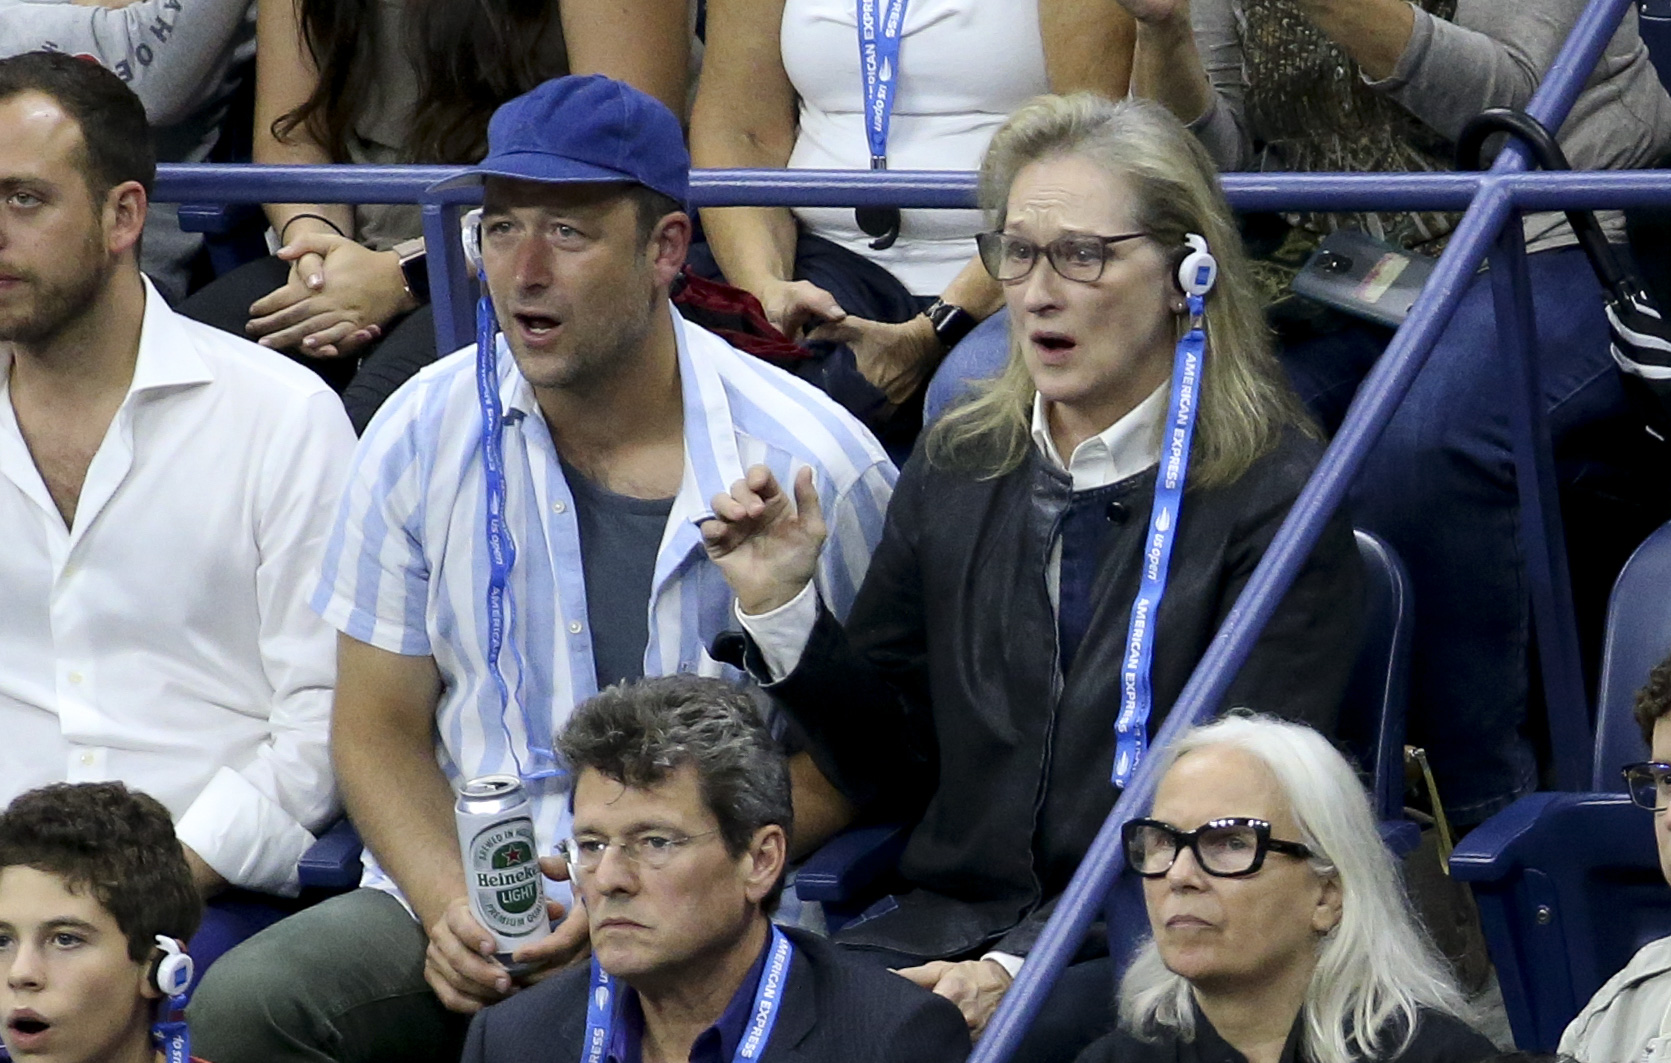 Meryl Streep attends the men's final on day 14 of the 2018 tennis US Open on Arthur Ashe stadium at the USTA Billie Jean King National Tennis Center on September 9, 2018 in Flushing Meadows, Queens, New York City. (Photo by Jean Catuffe/GC Images)